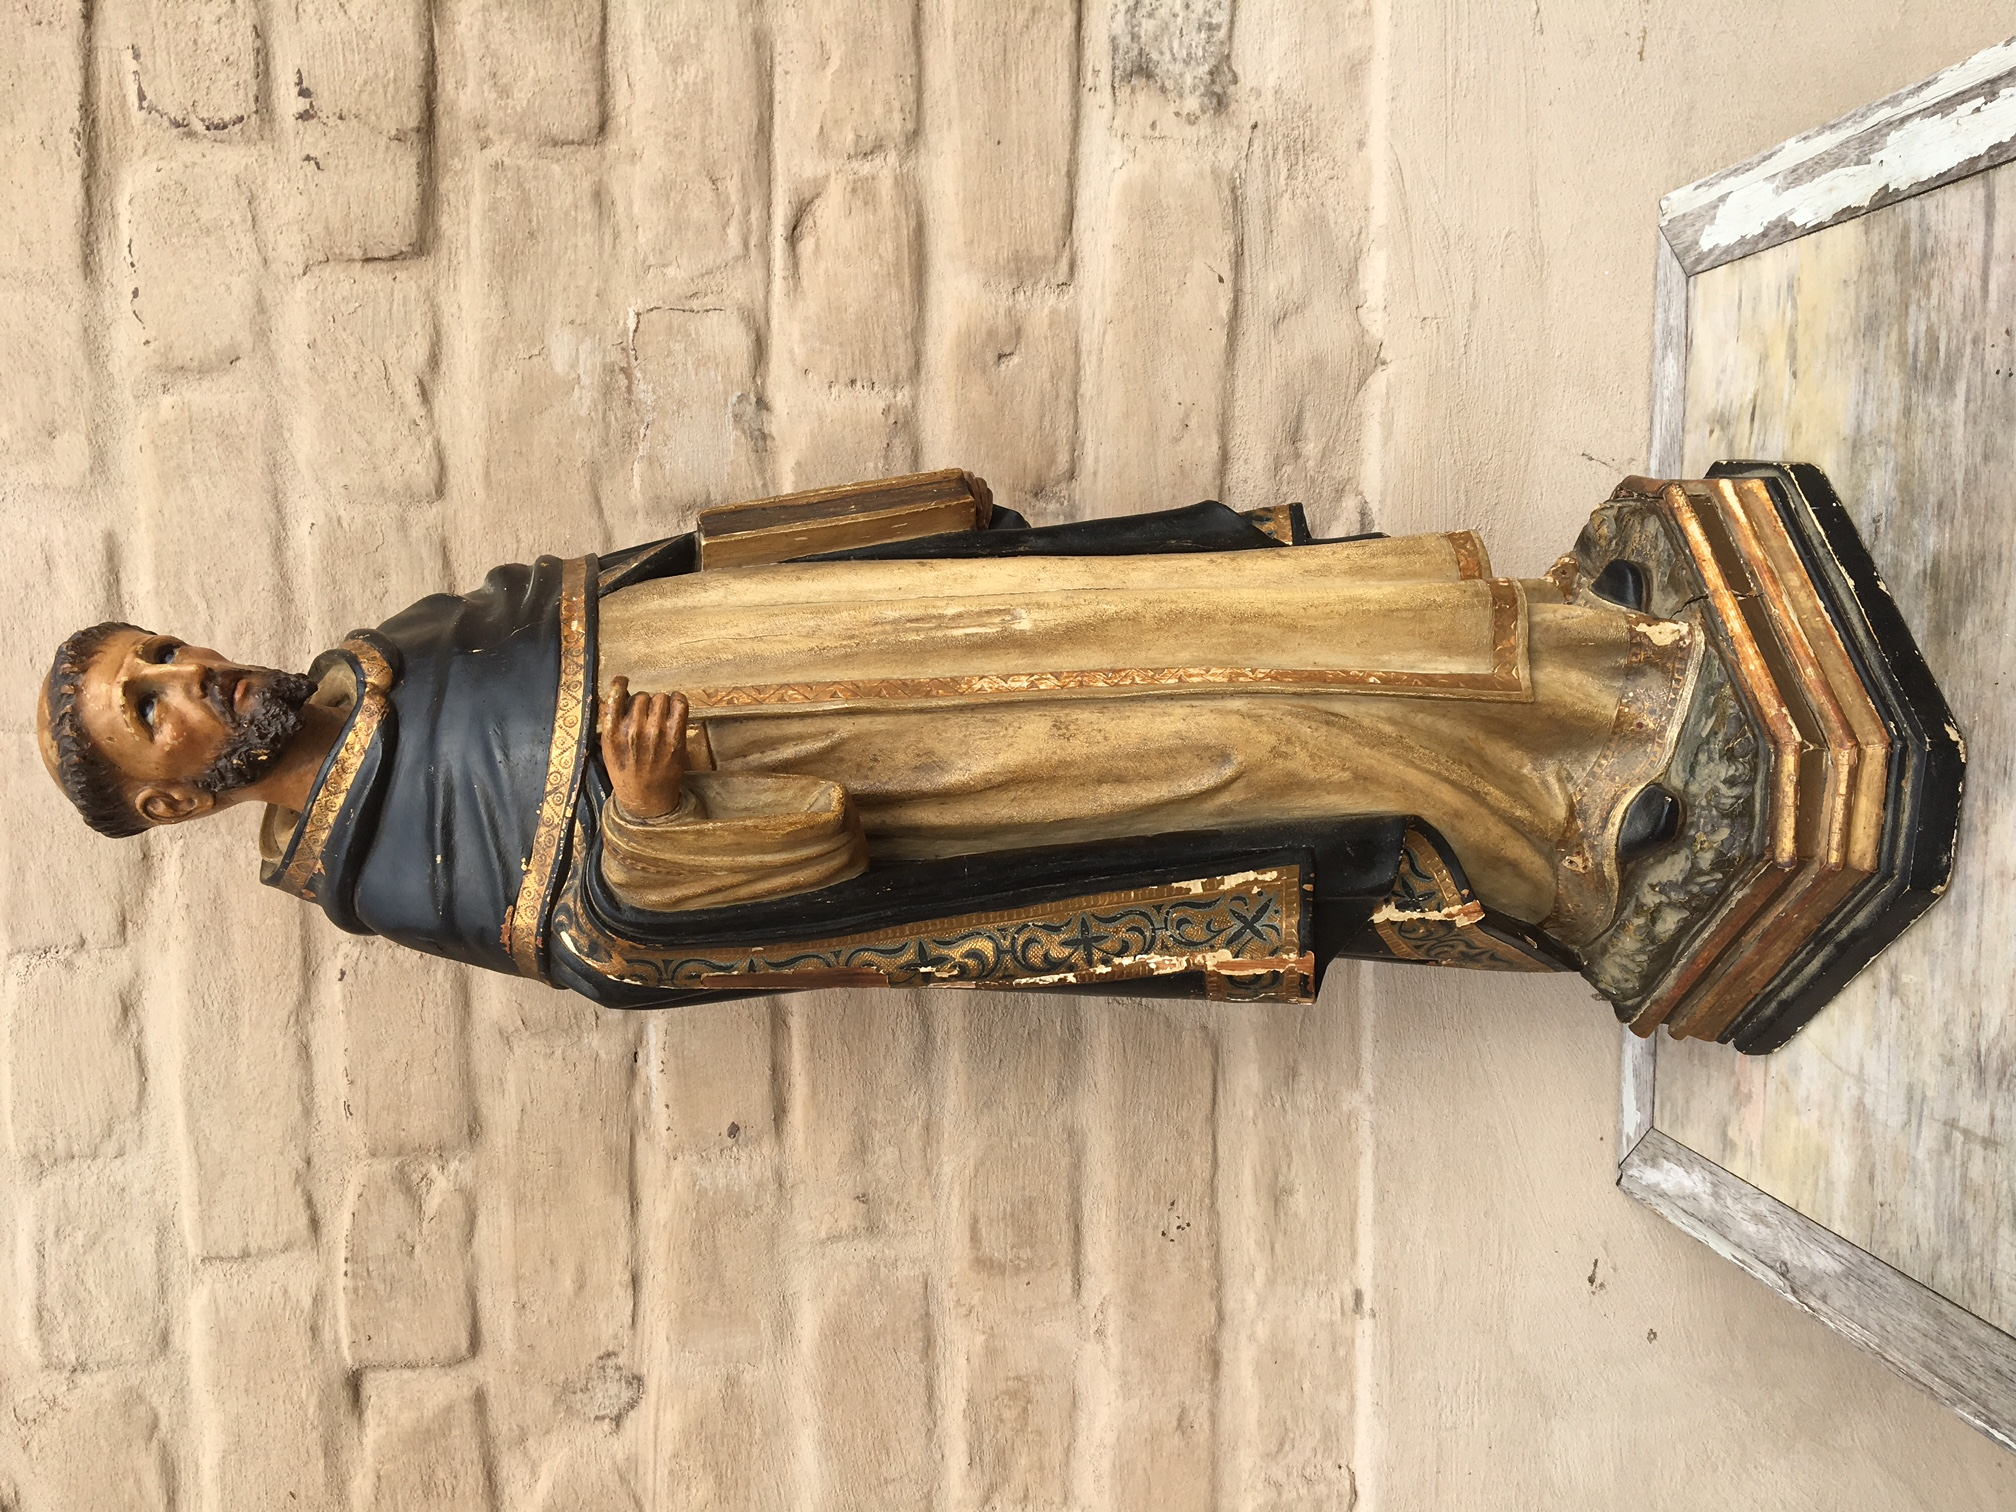 Antique church statue in wood